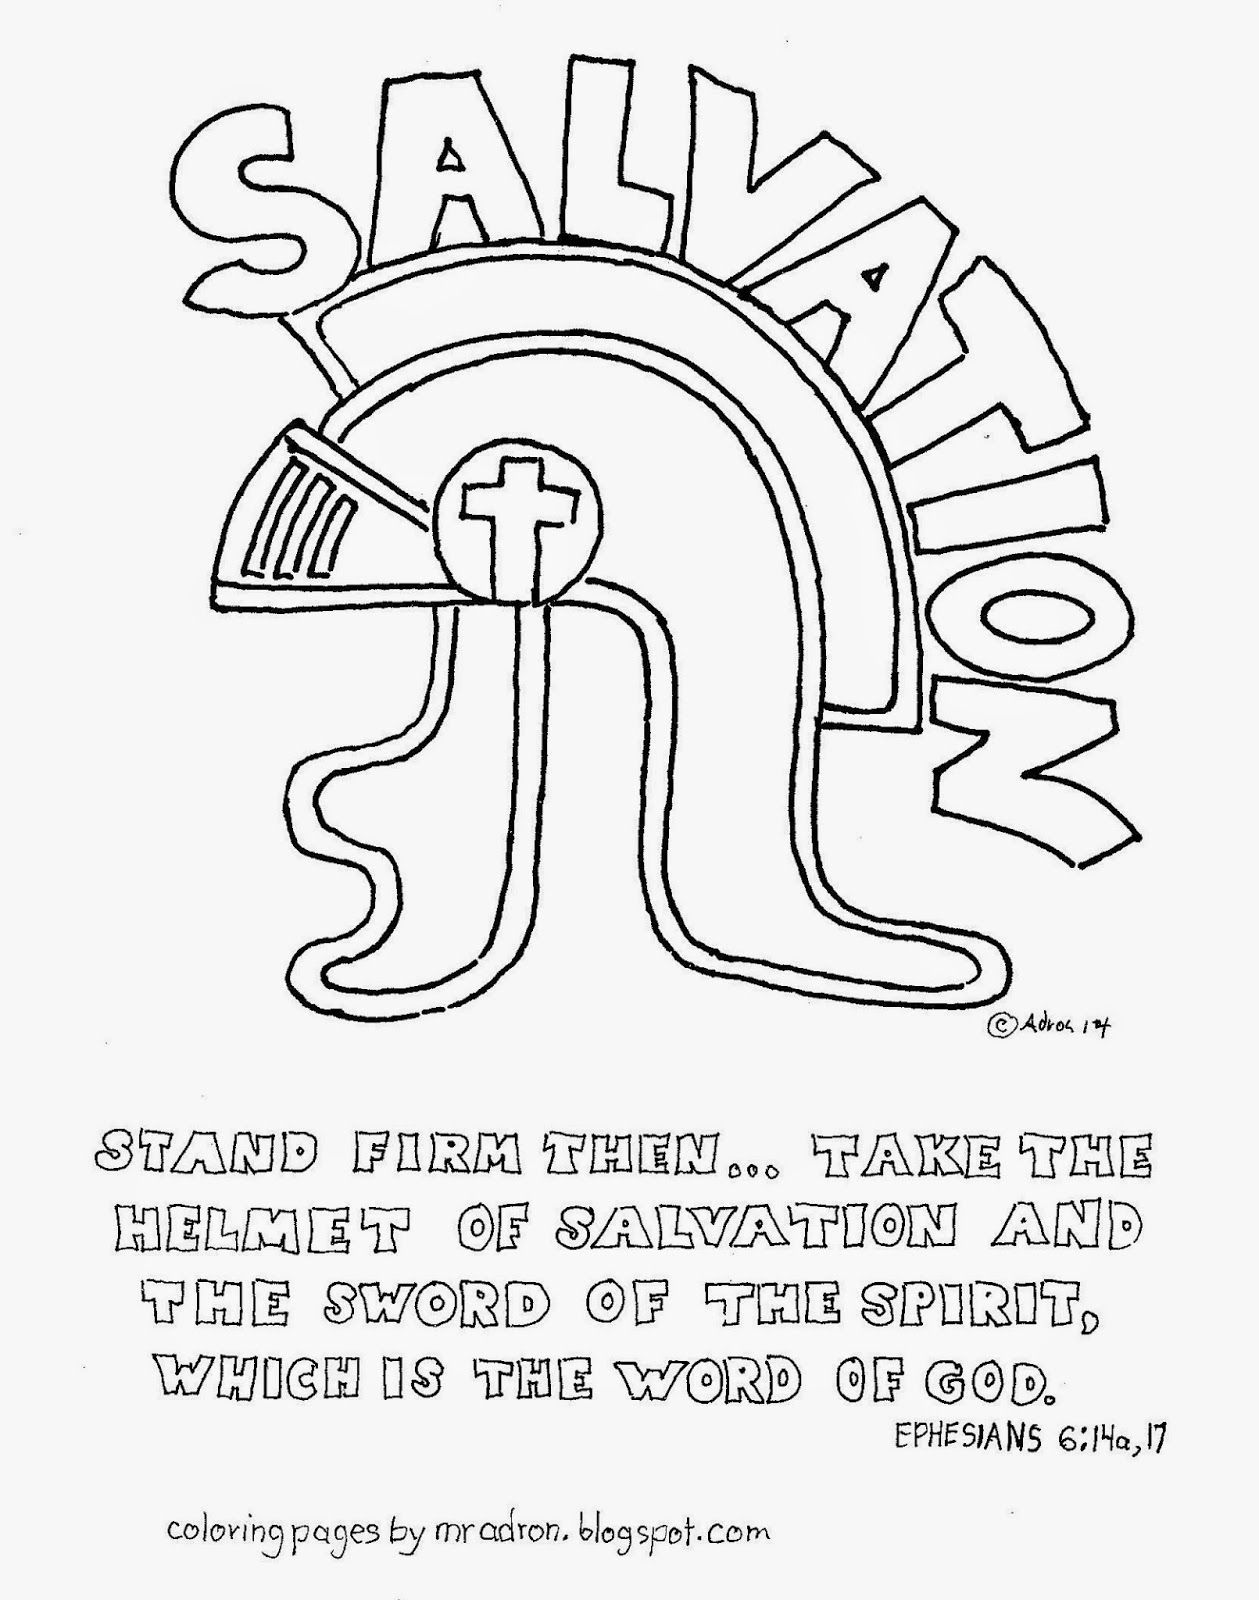 The Helmet Of Salvation Kids Coloring Page See More At My Blog Http Coloringpagesbymradron Blogspot Co Armor Of God Bible Lessons For Kids Bible Activities